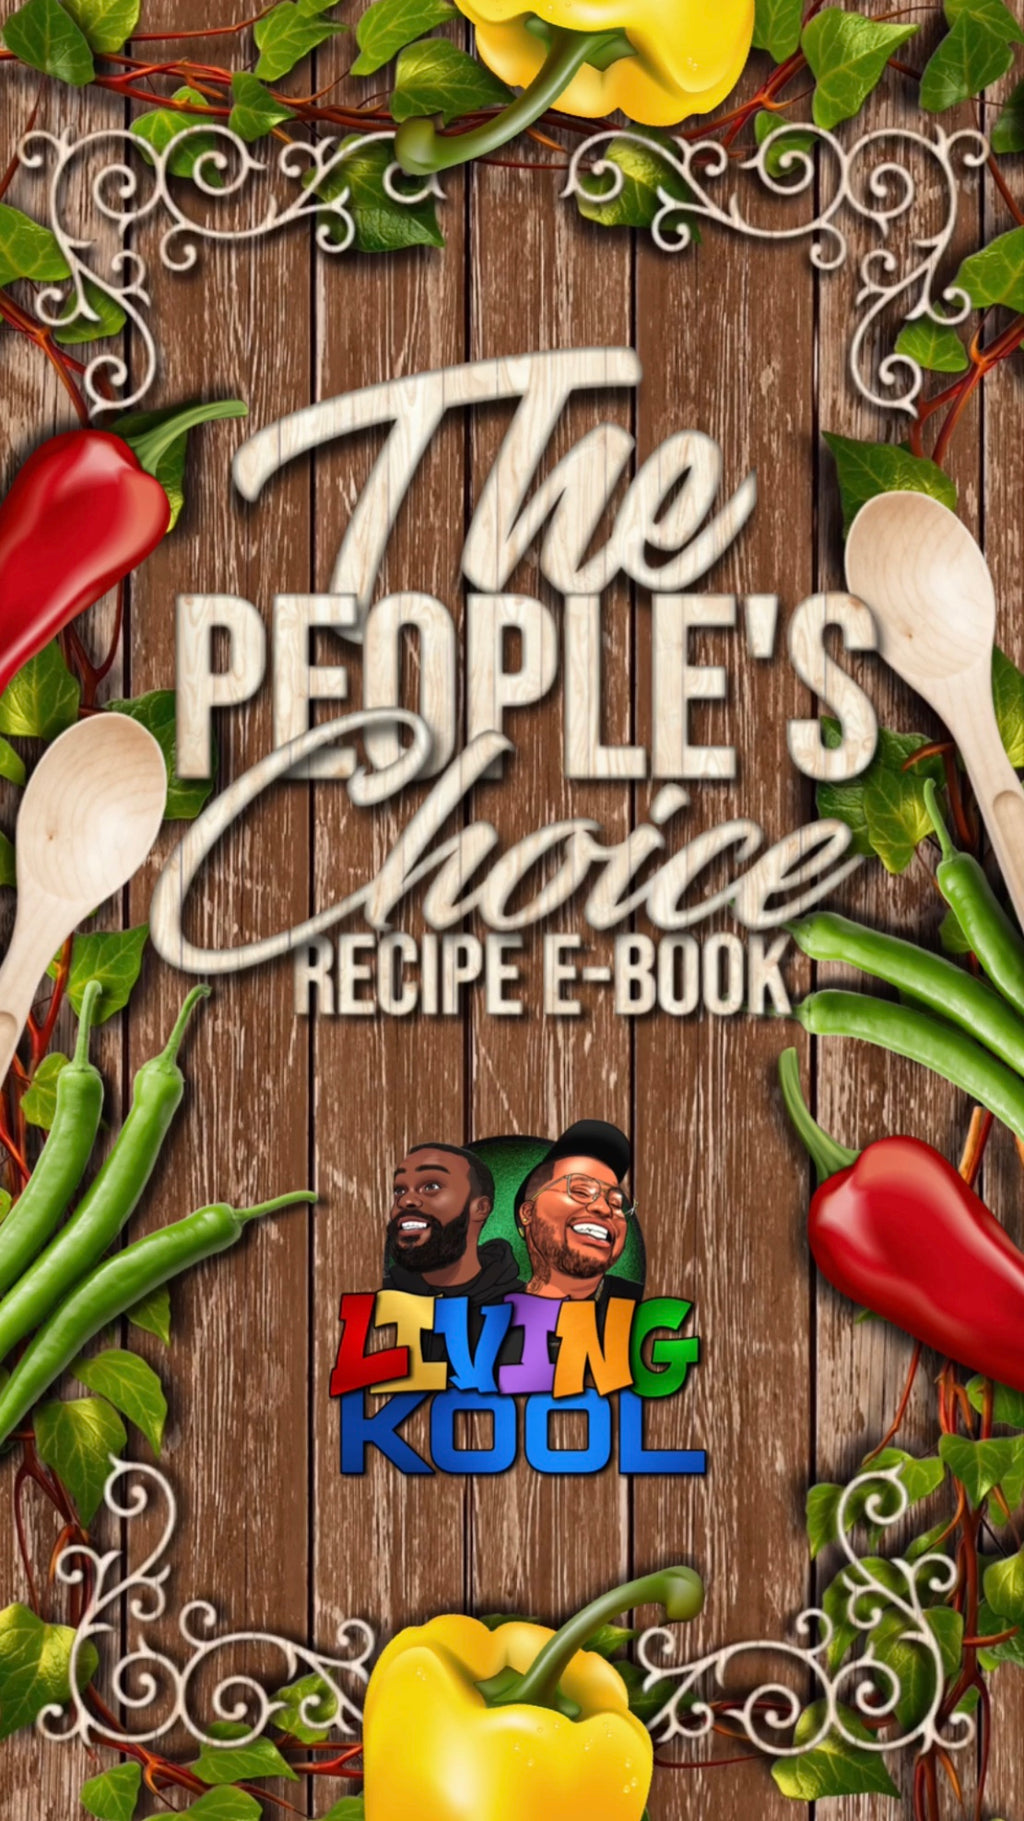 The People's Choice Recipe E-Book